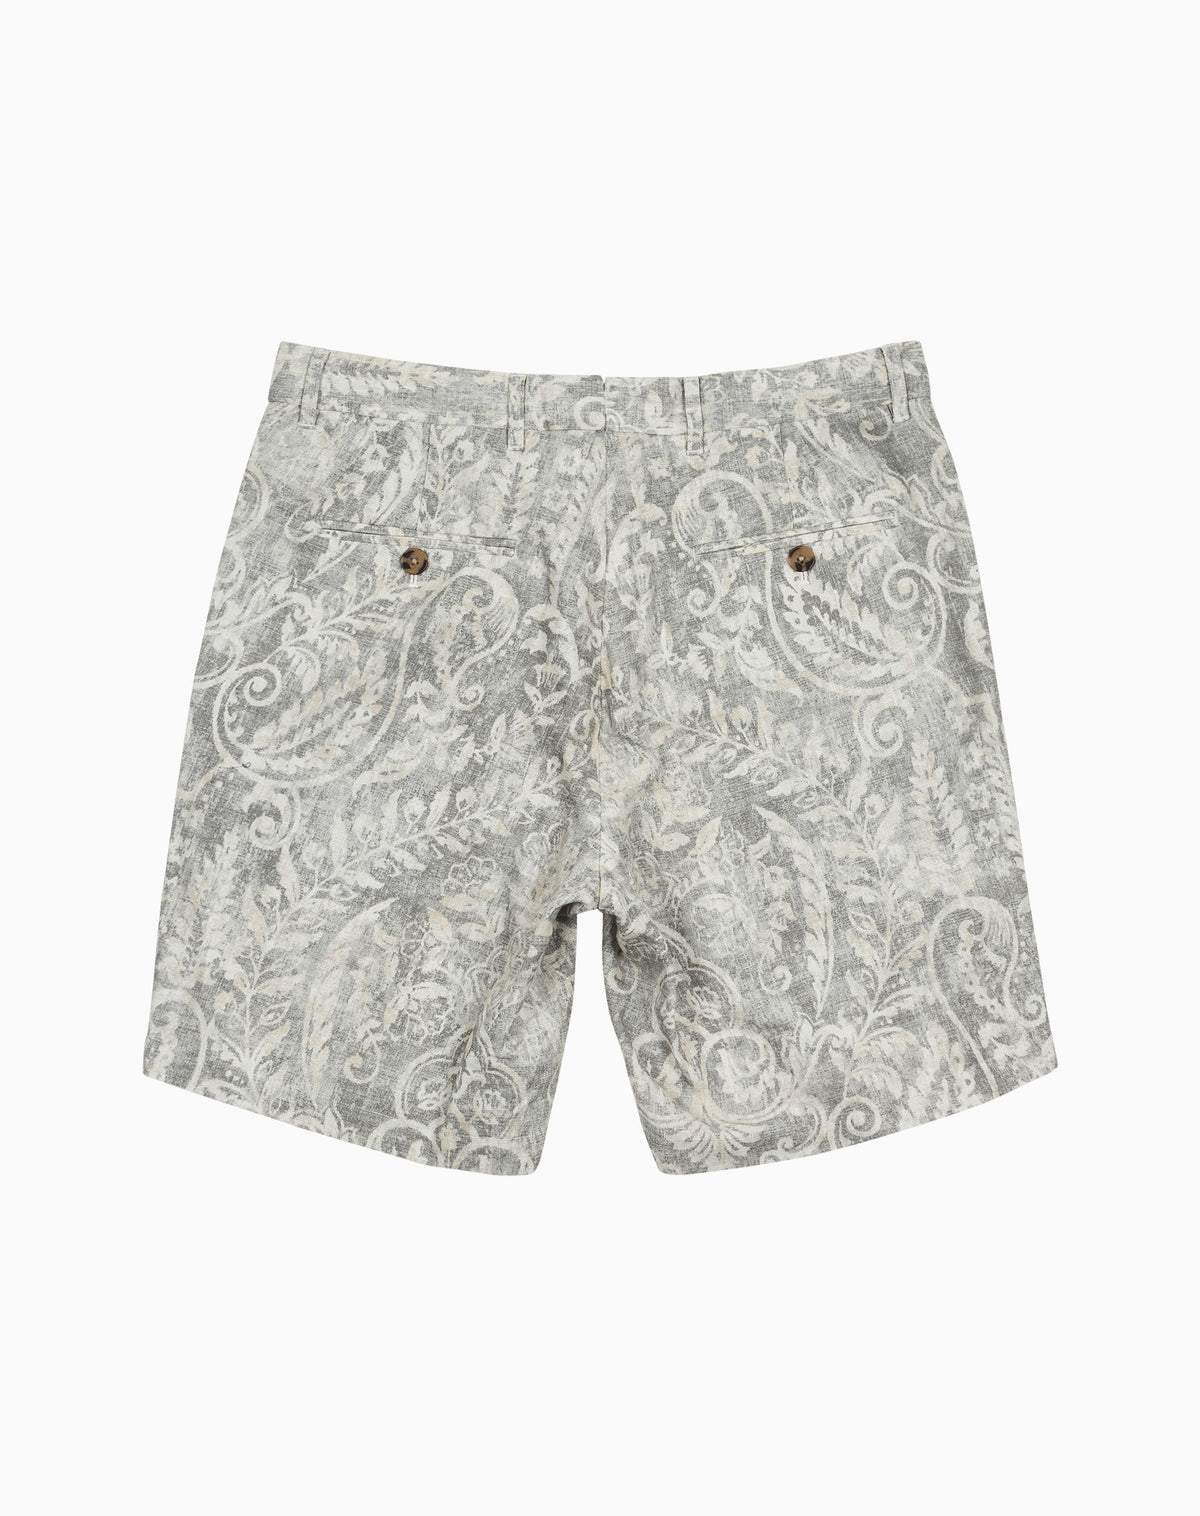 Printed Short in Pewter Floral